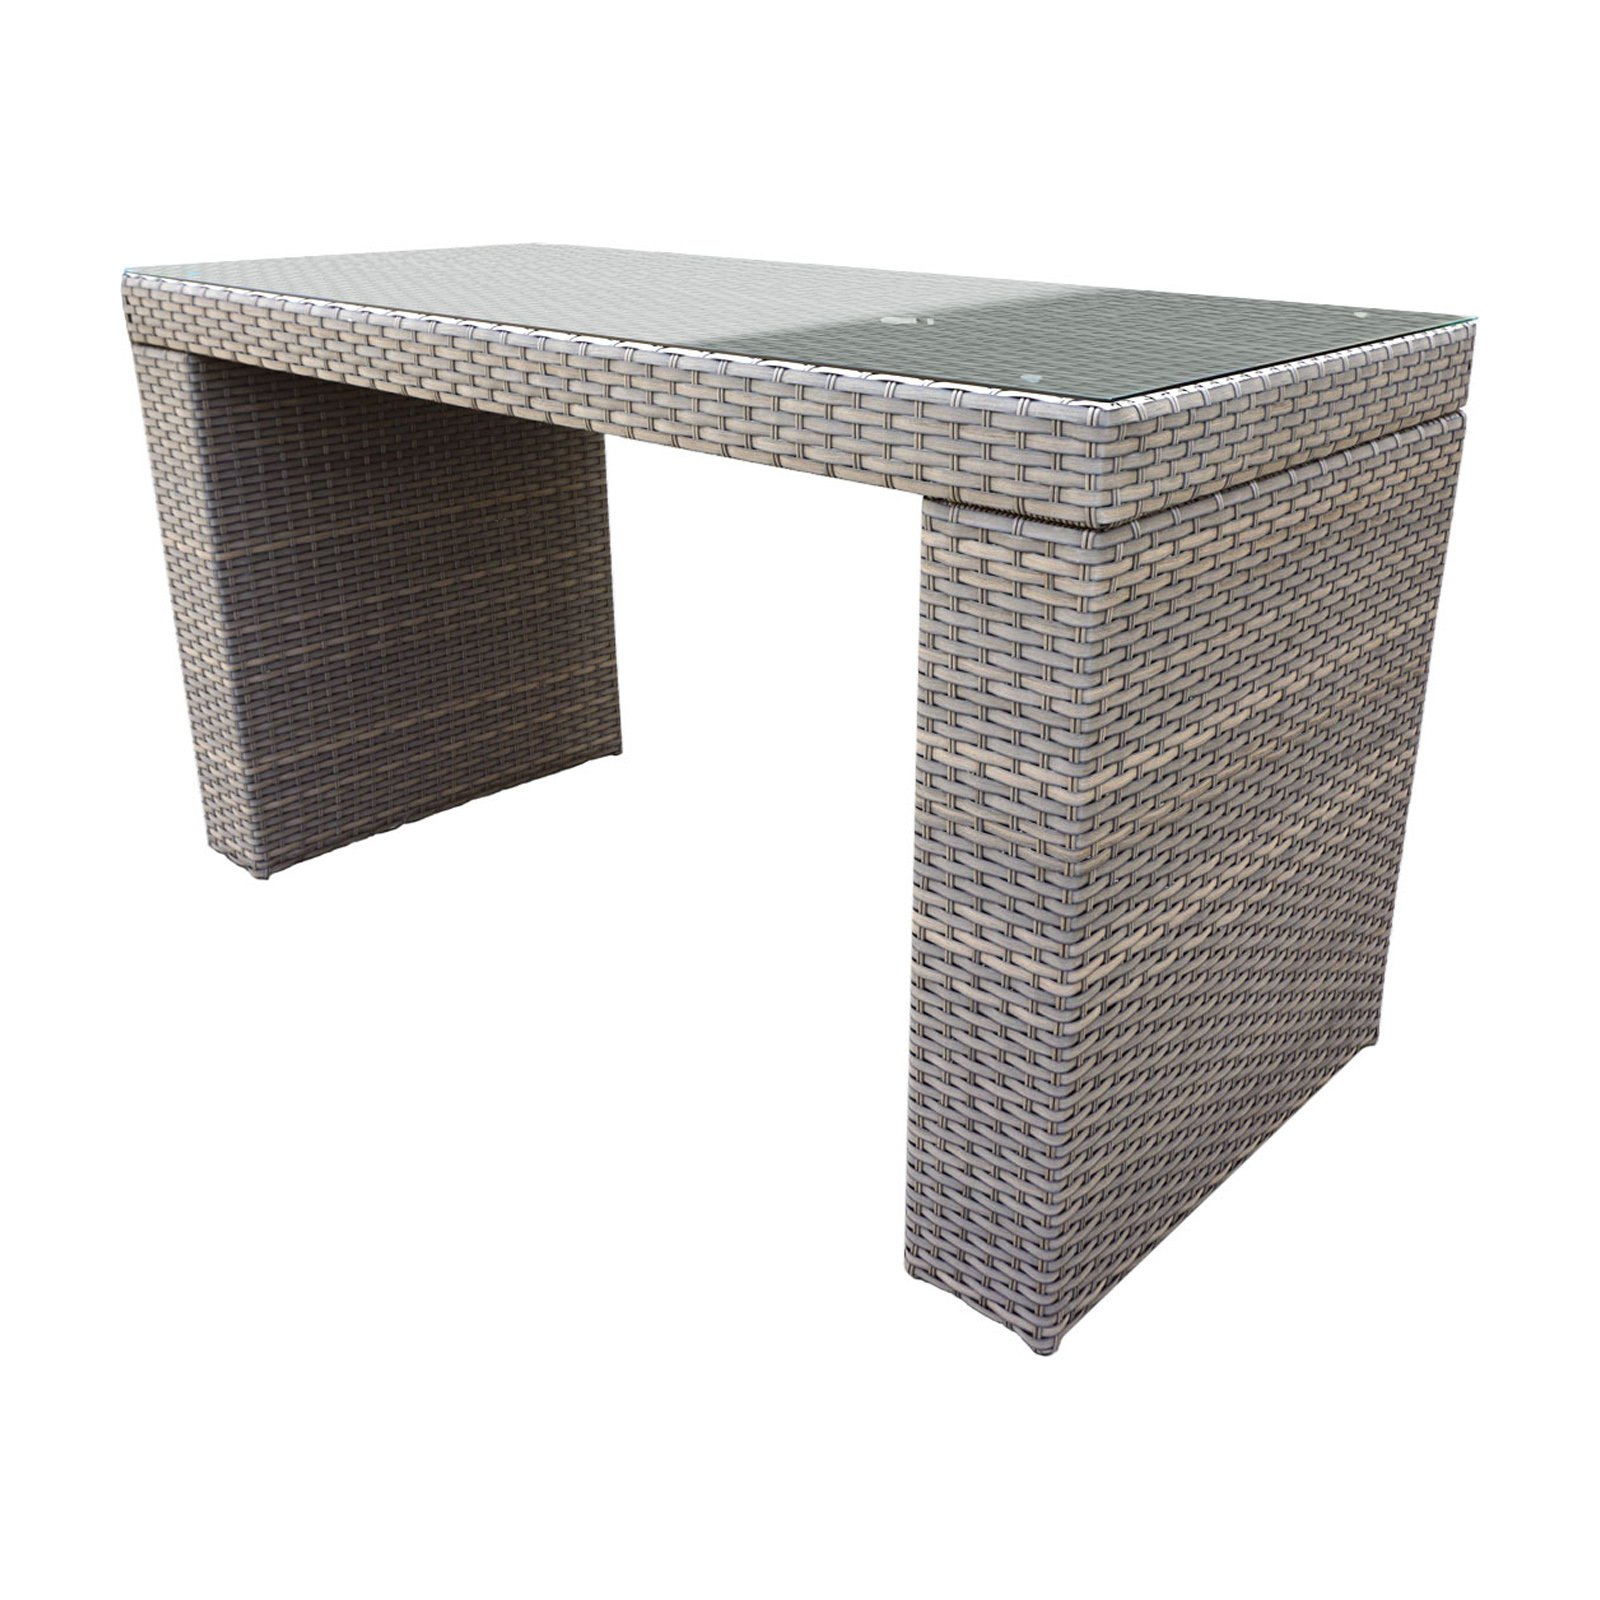 TK Classics Florence Wicker Bar Height Patio Table